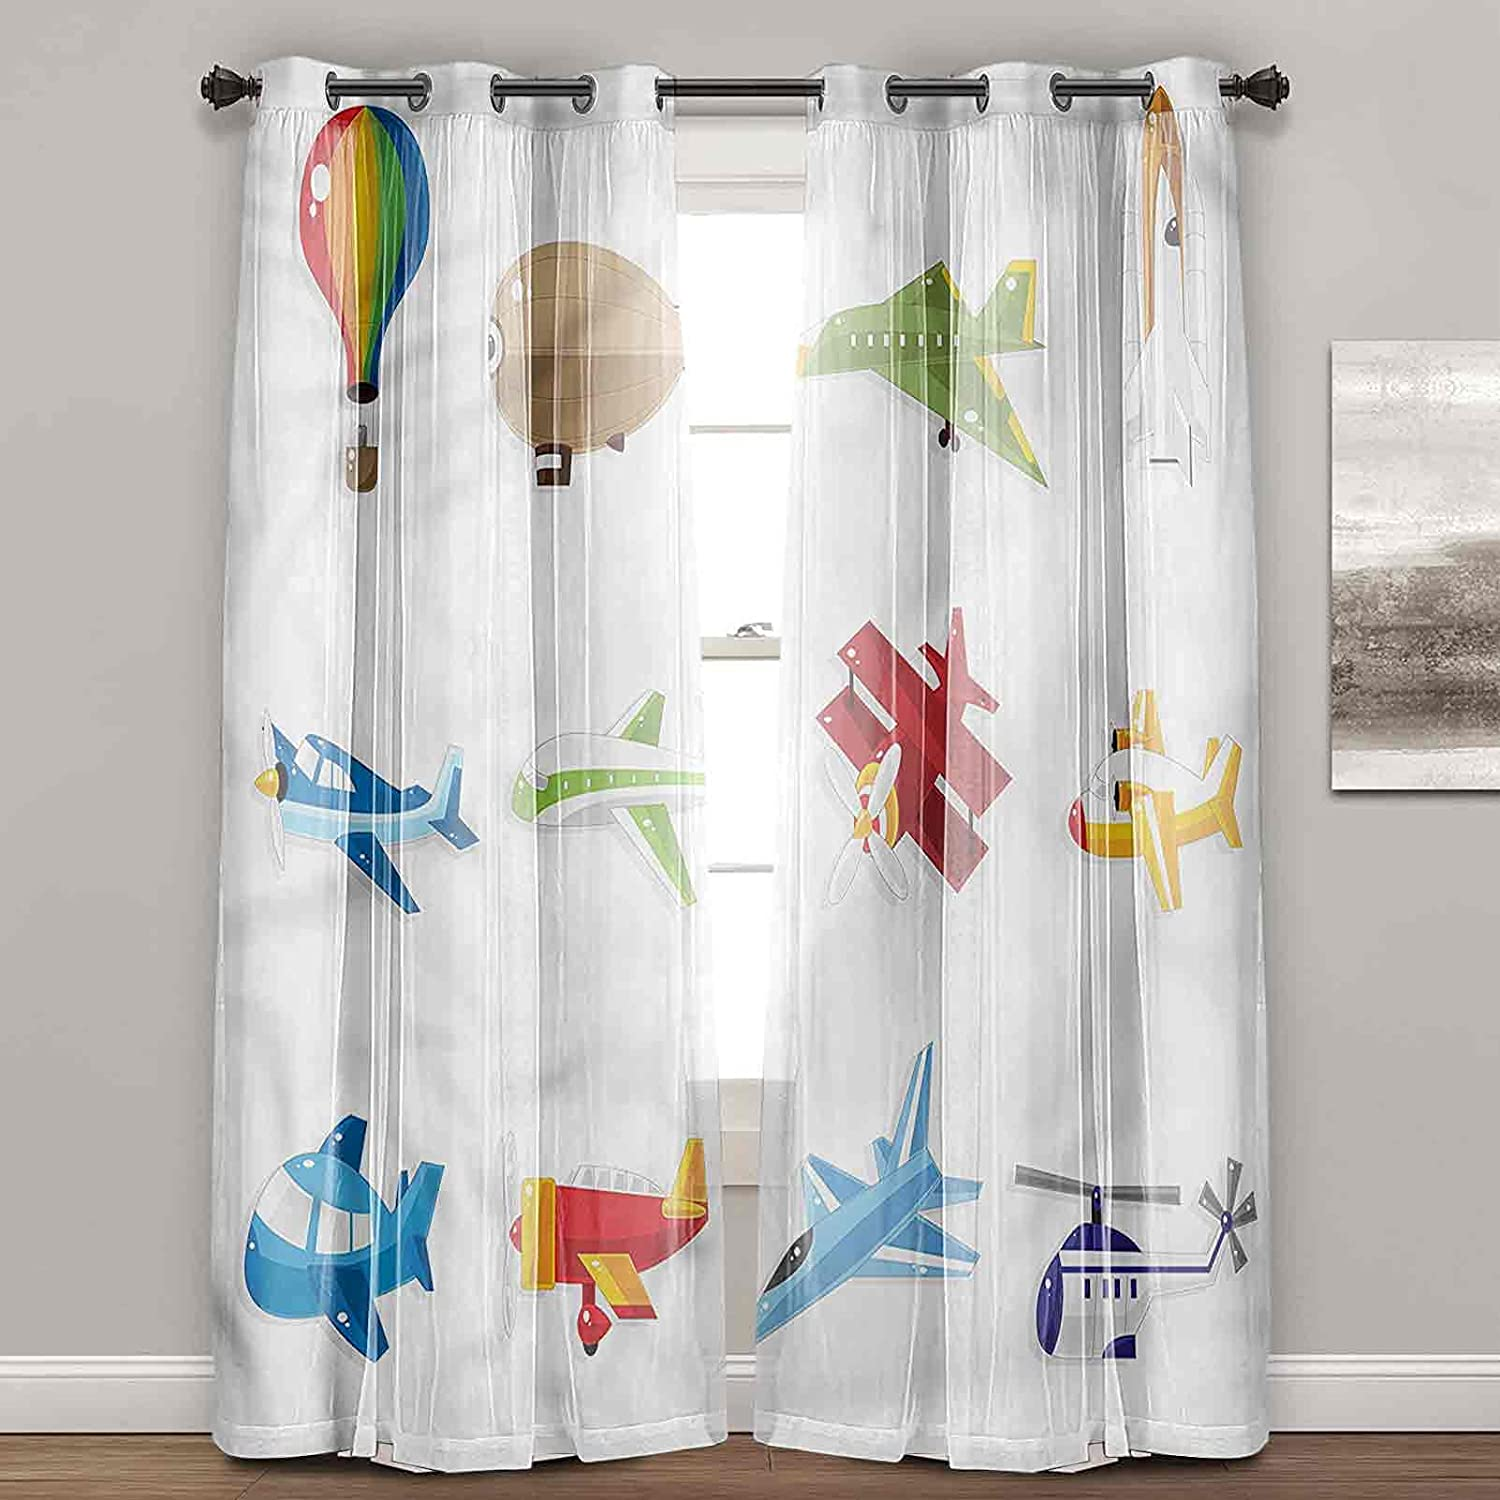 Window Curtains for Bedroom Boys Airliner Drapes Jet Zeppelin Long Beach Mall Sale item